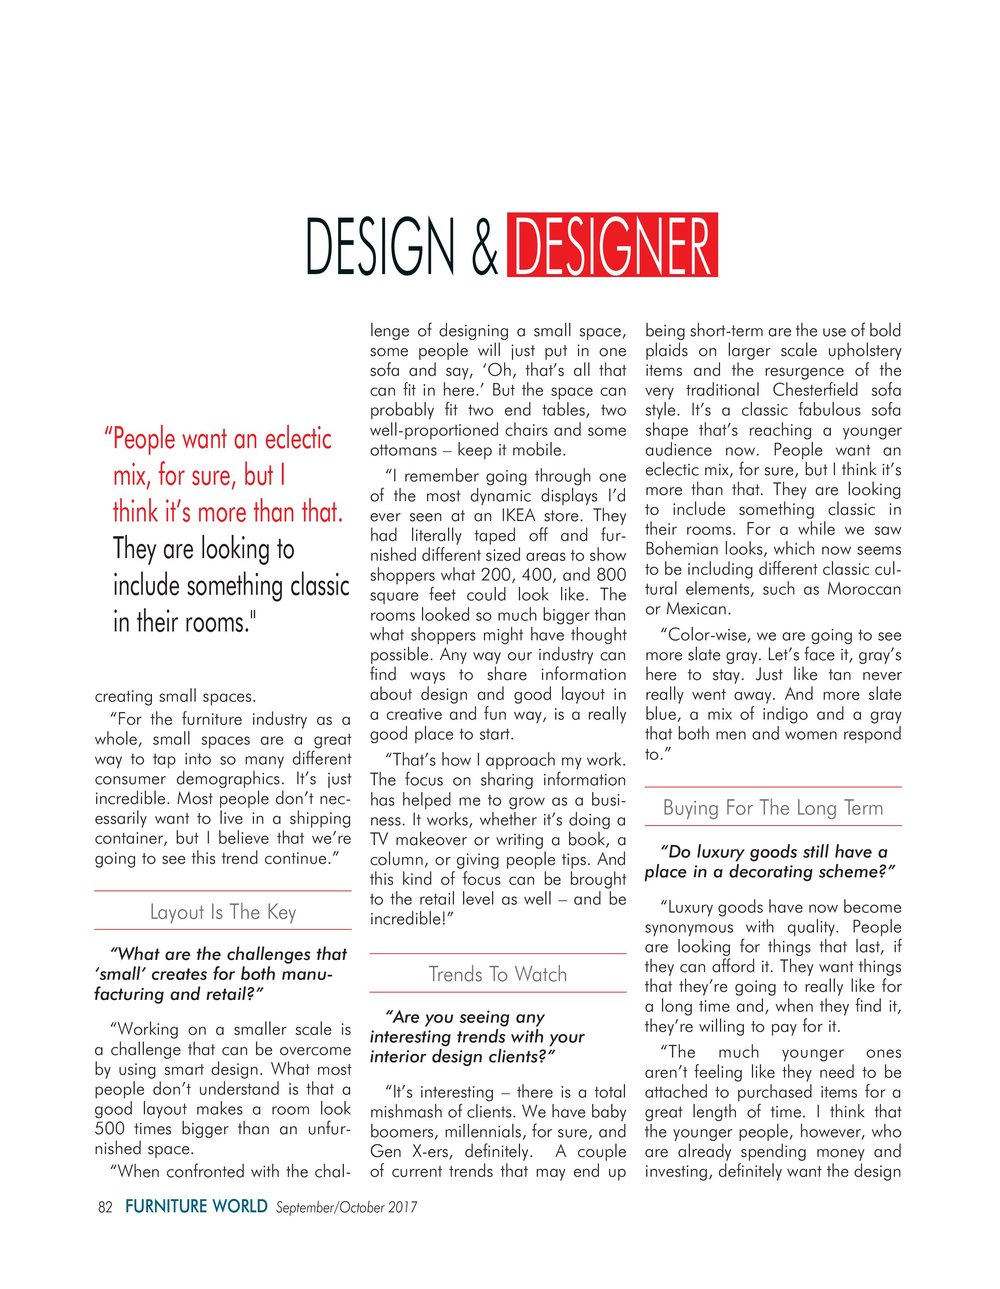 Furniture World Feature October 2017-page-008 (1).jpg